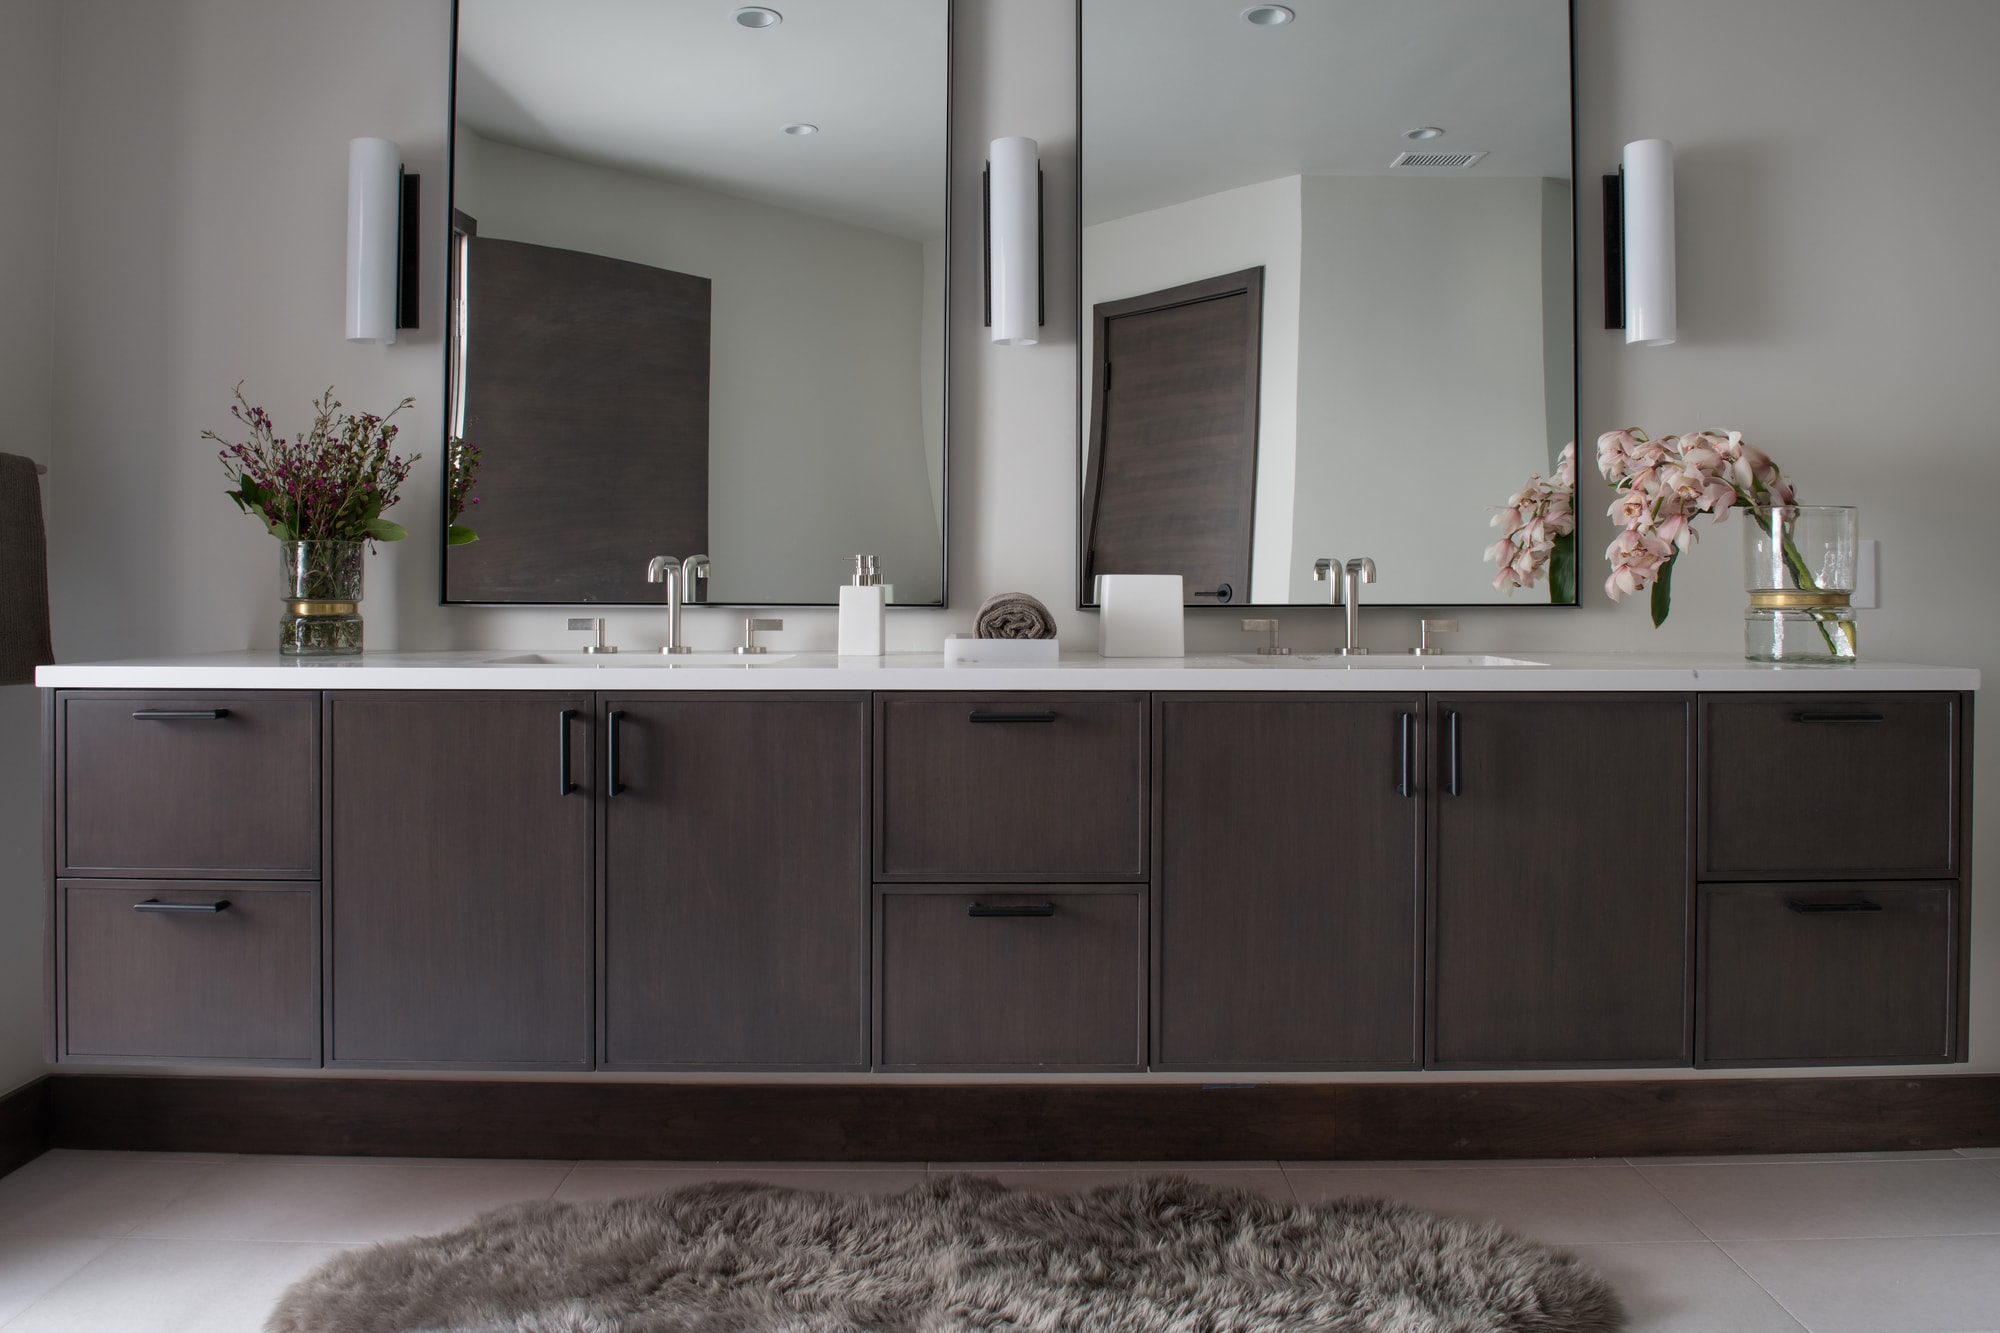 Elegant two mirror above the spacious cabinet